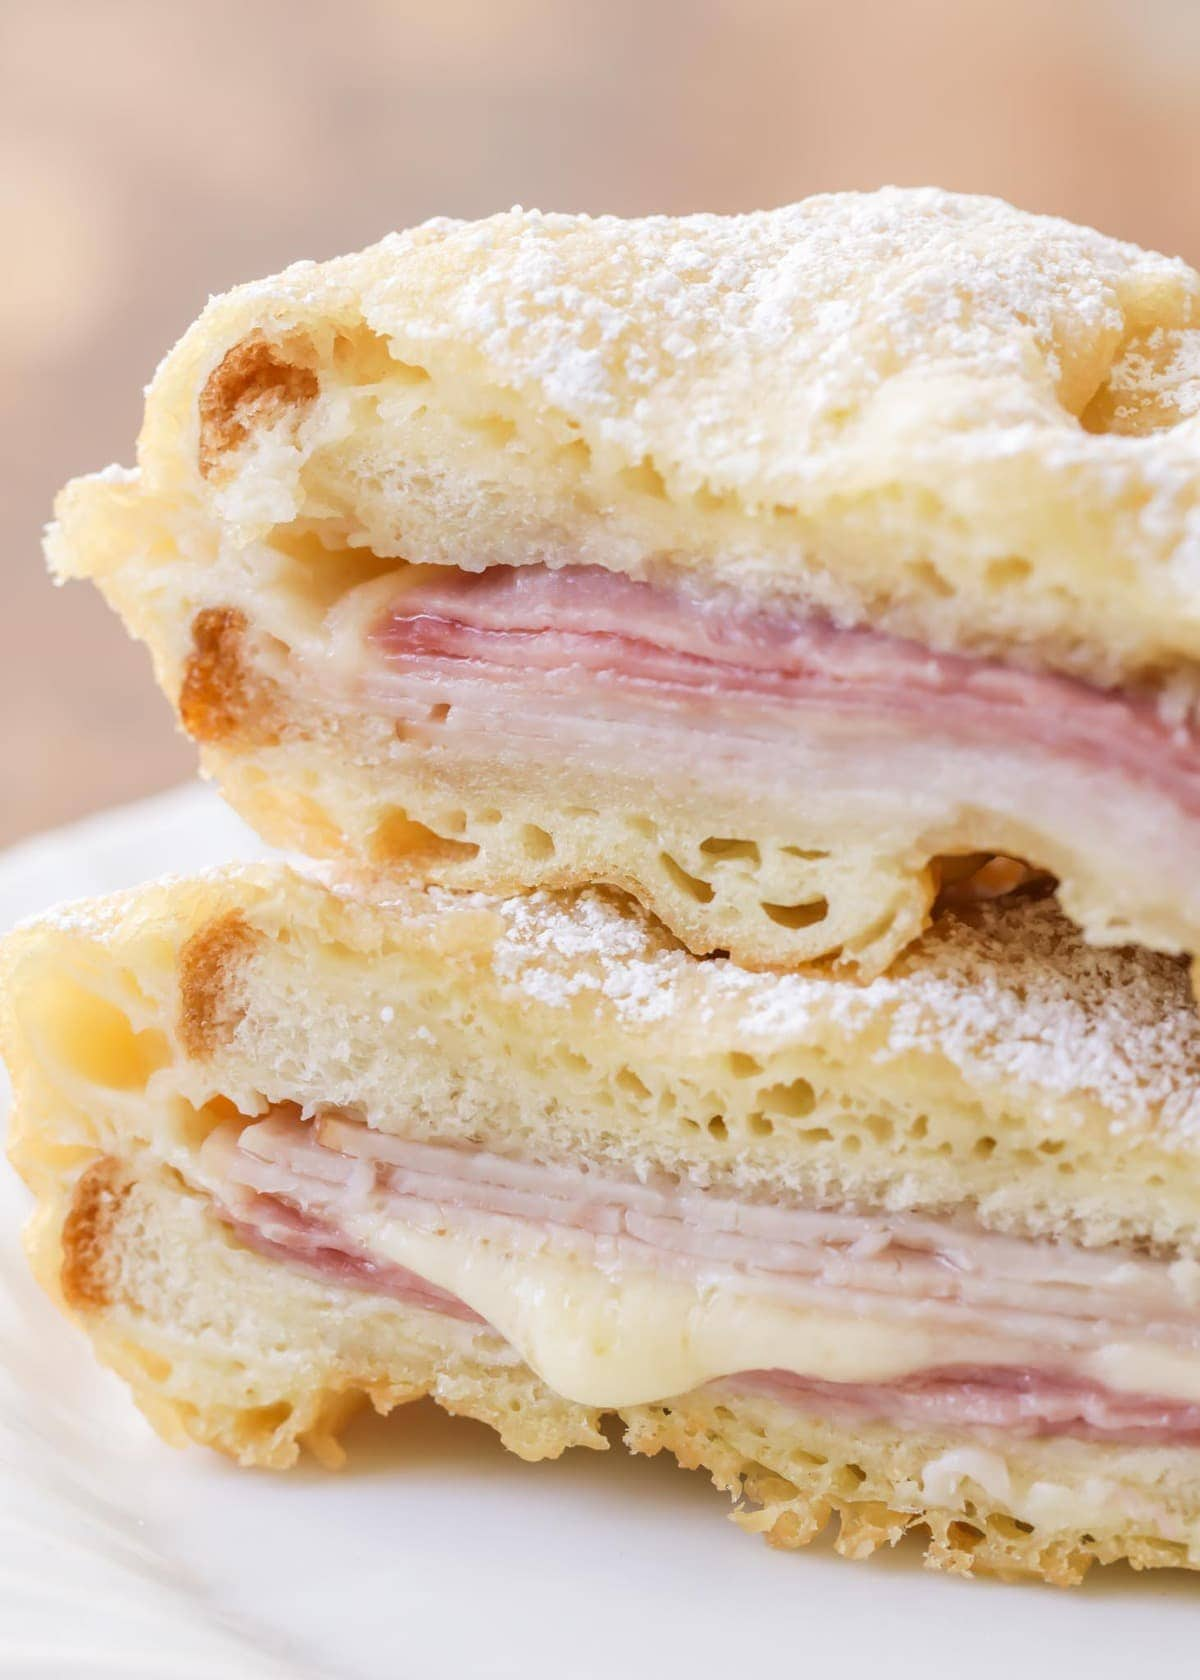 close up of a fried monte cristo sandwich